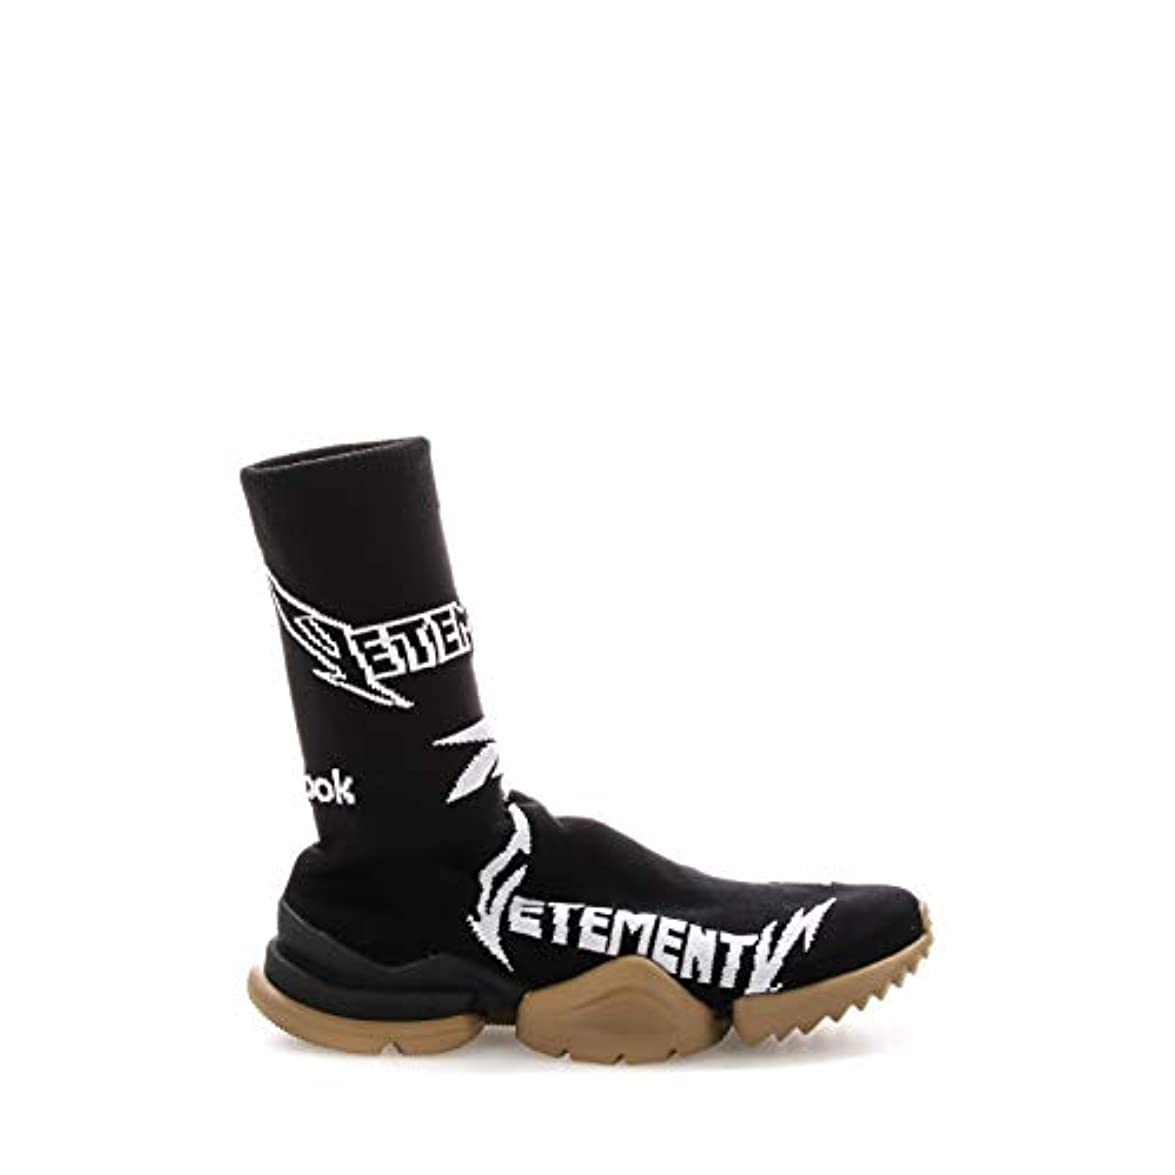 Vetements Hi Top Sneakers Donna Uah19re5blackwhite Poliestere Nero